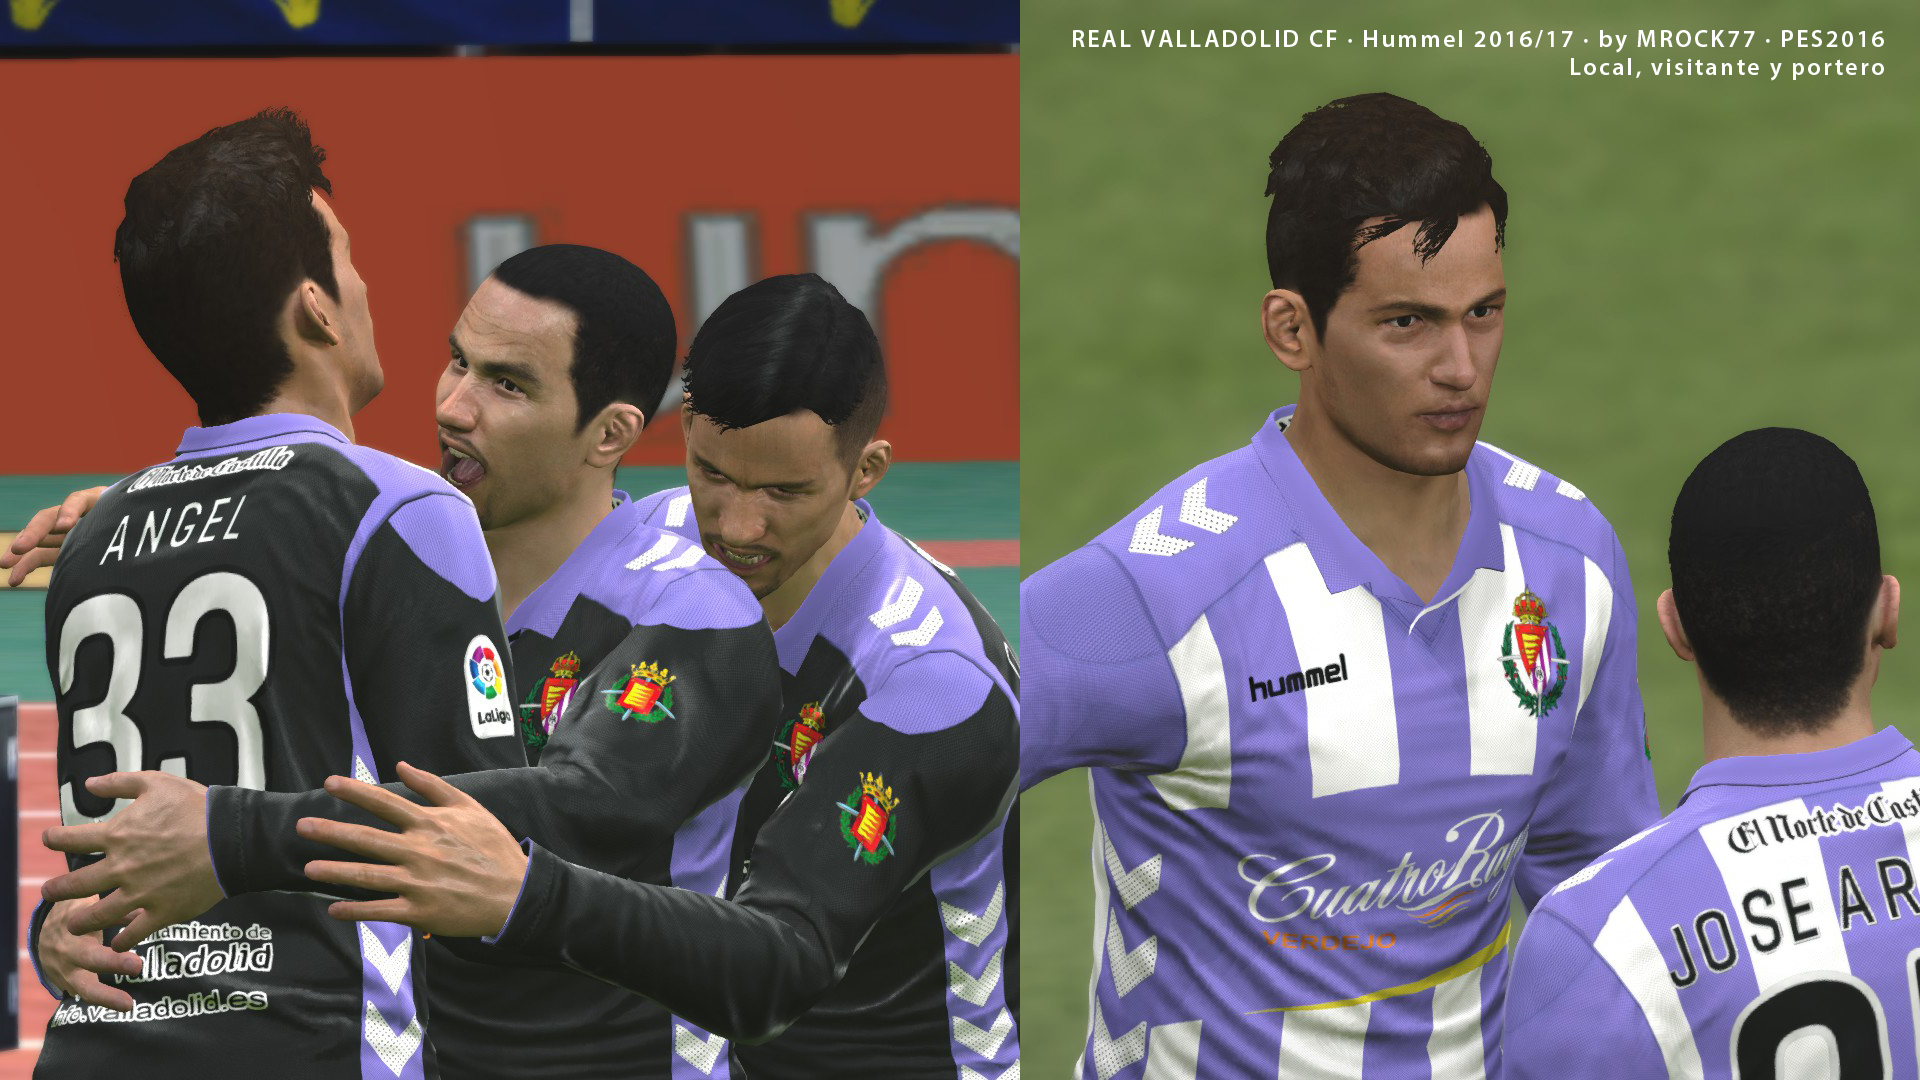 Kits Real Valladolid CF 16/17 by Mrock77